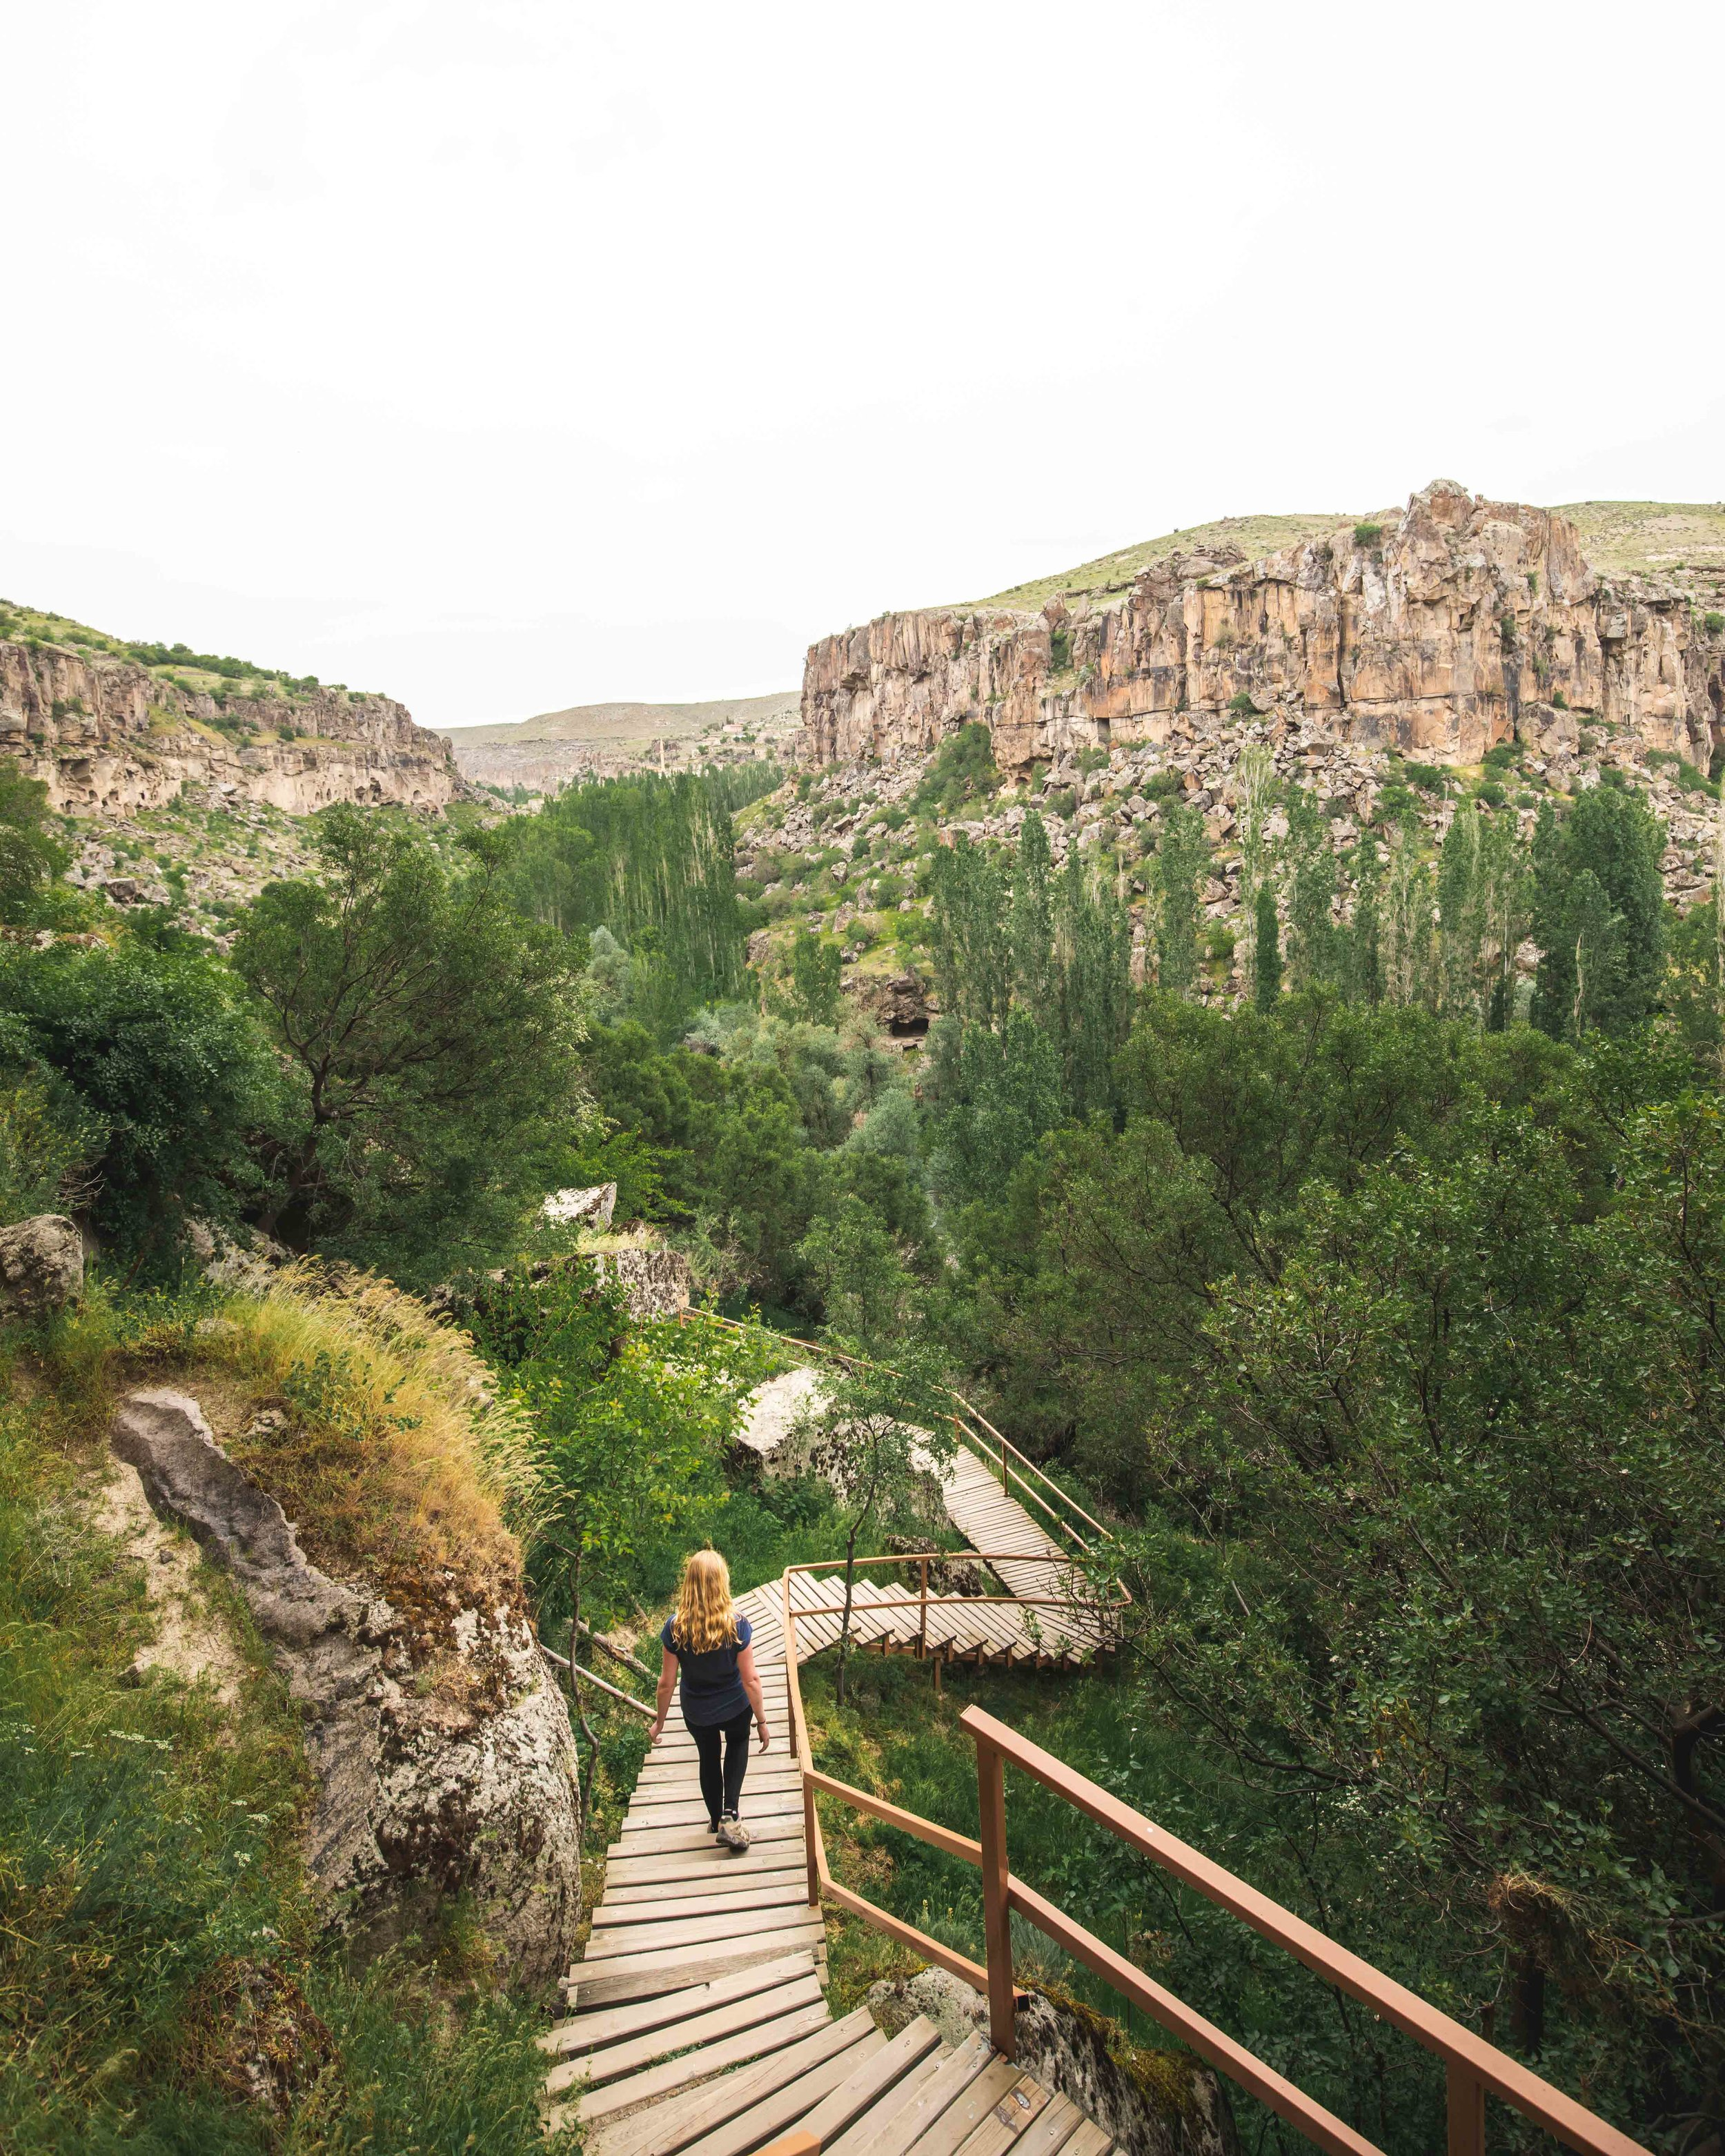 Hiking in the Ilhara Valley, Cappadocia